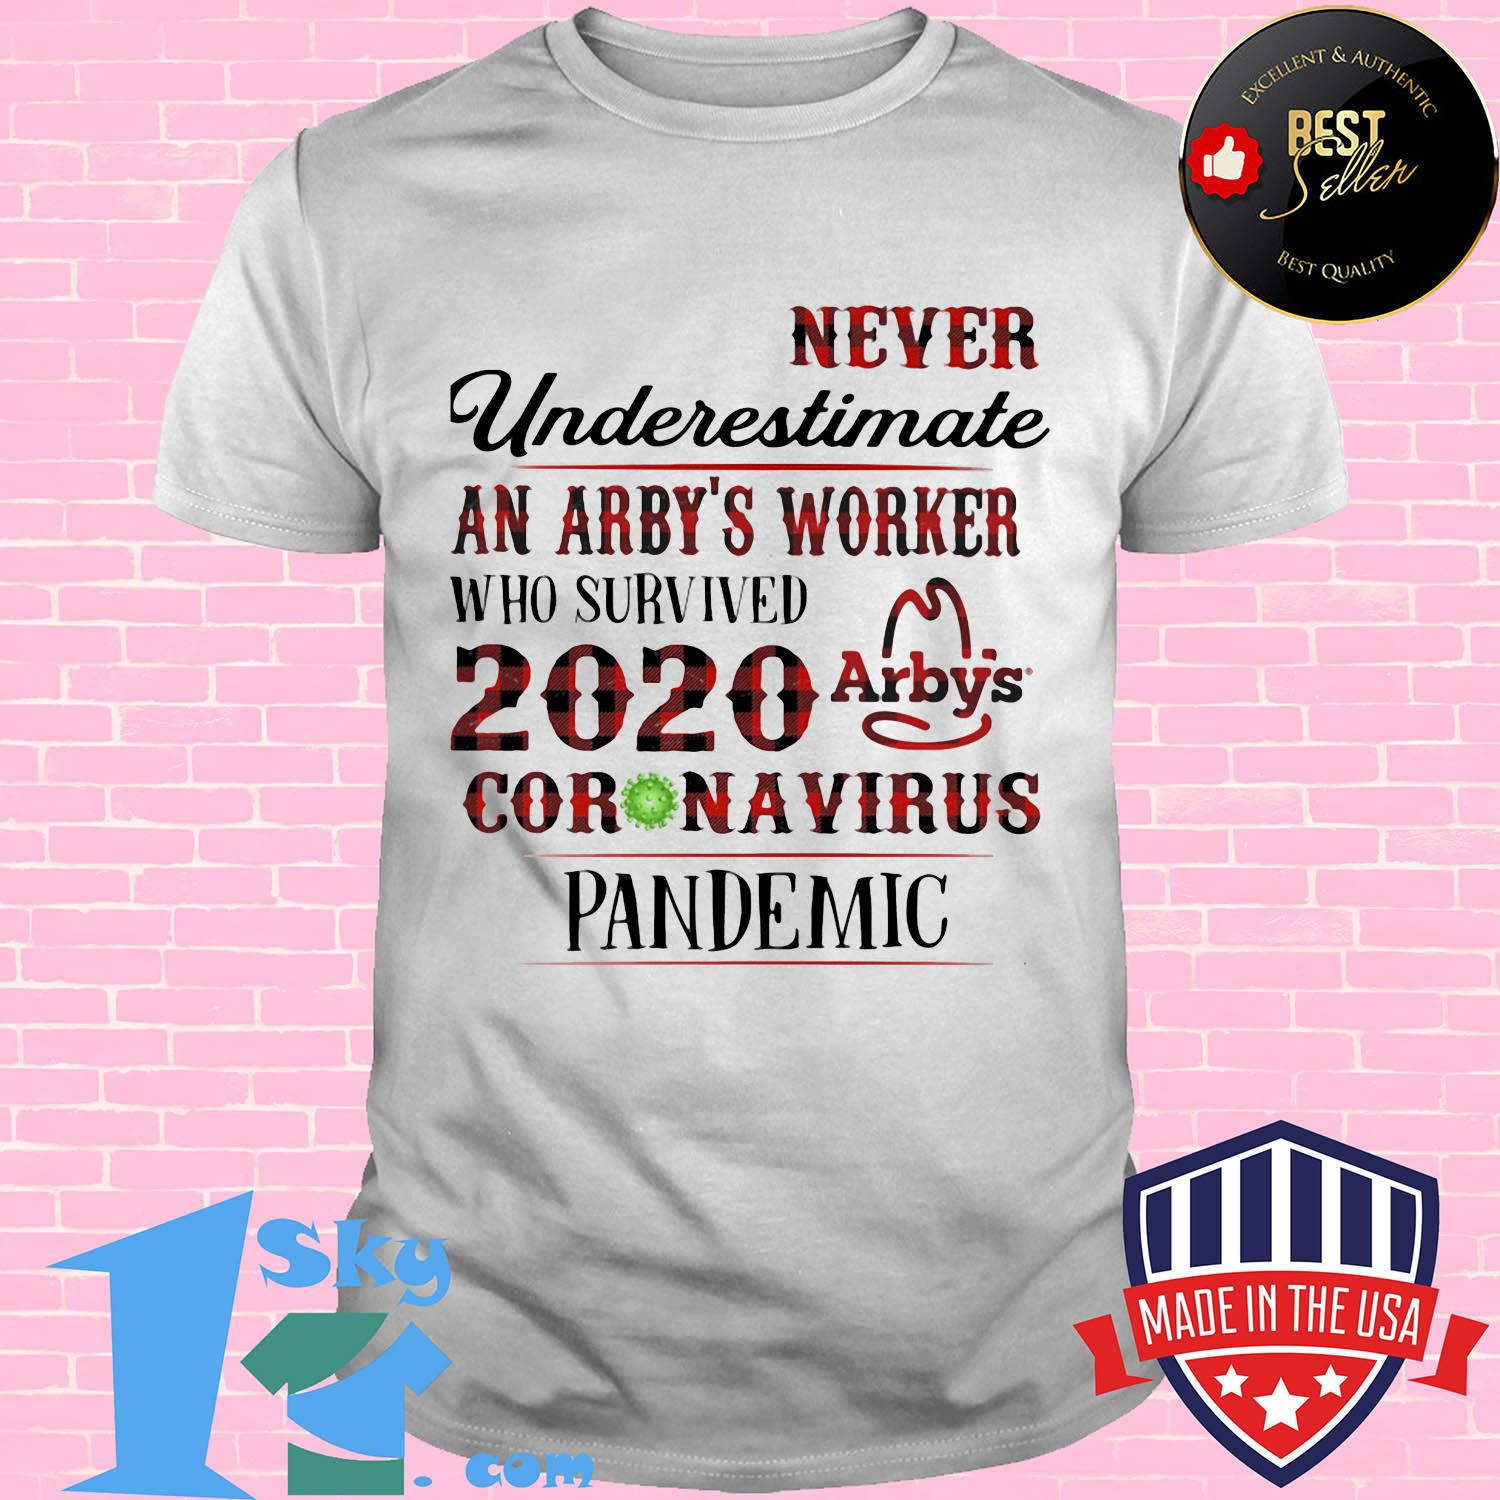 Never underestimate a arby's worker who survived 2020 coronavirus pandemic vintage shirt